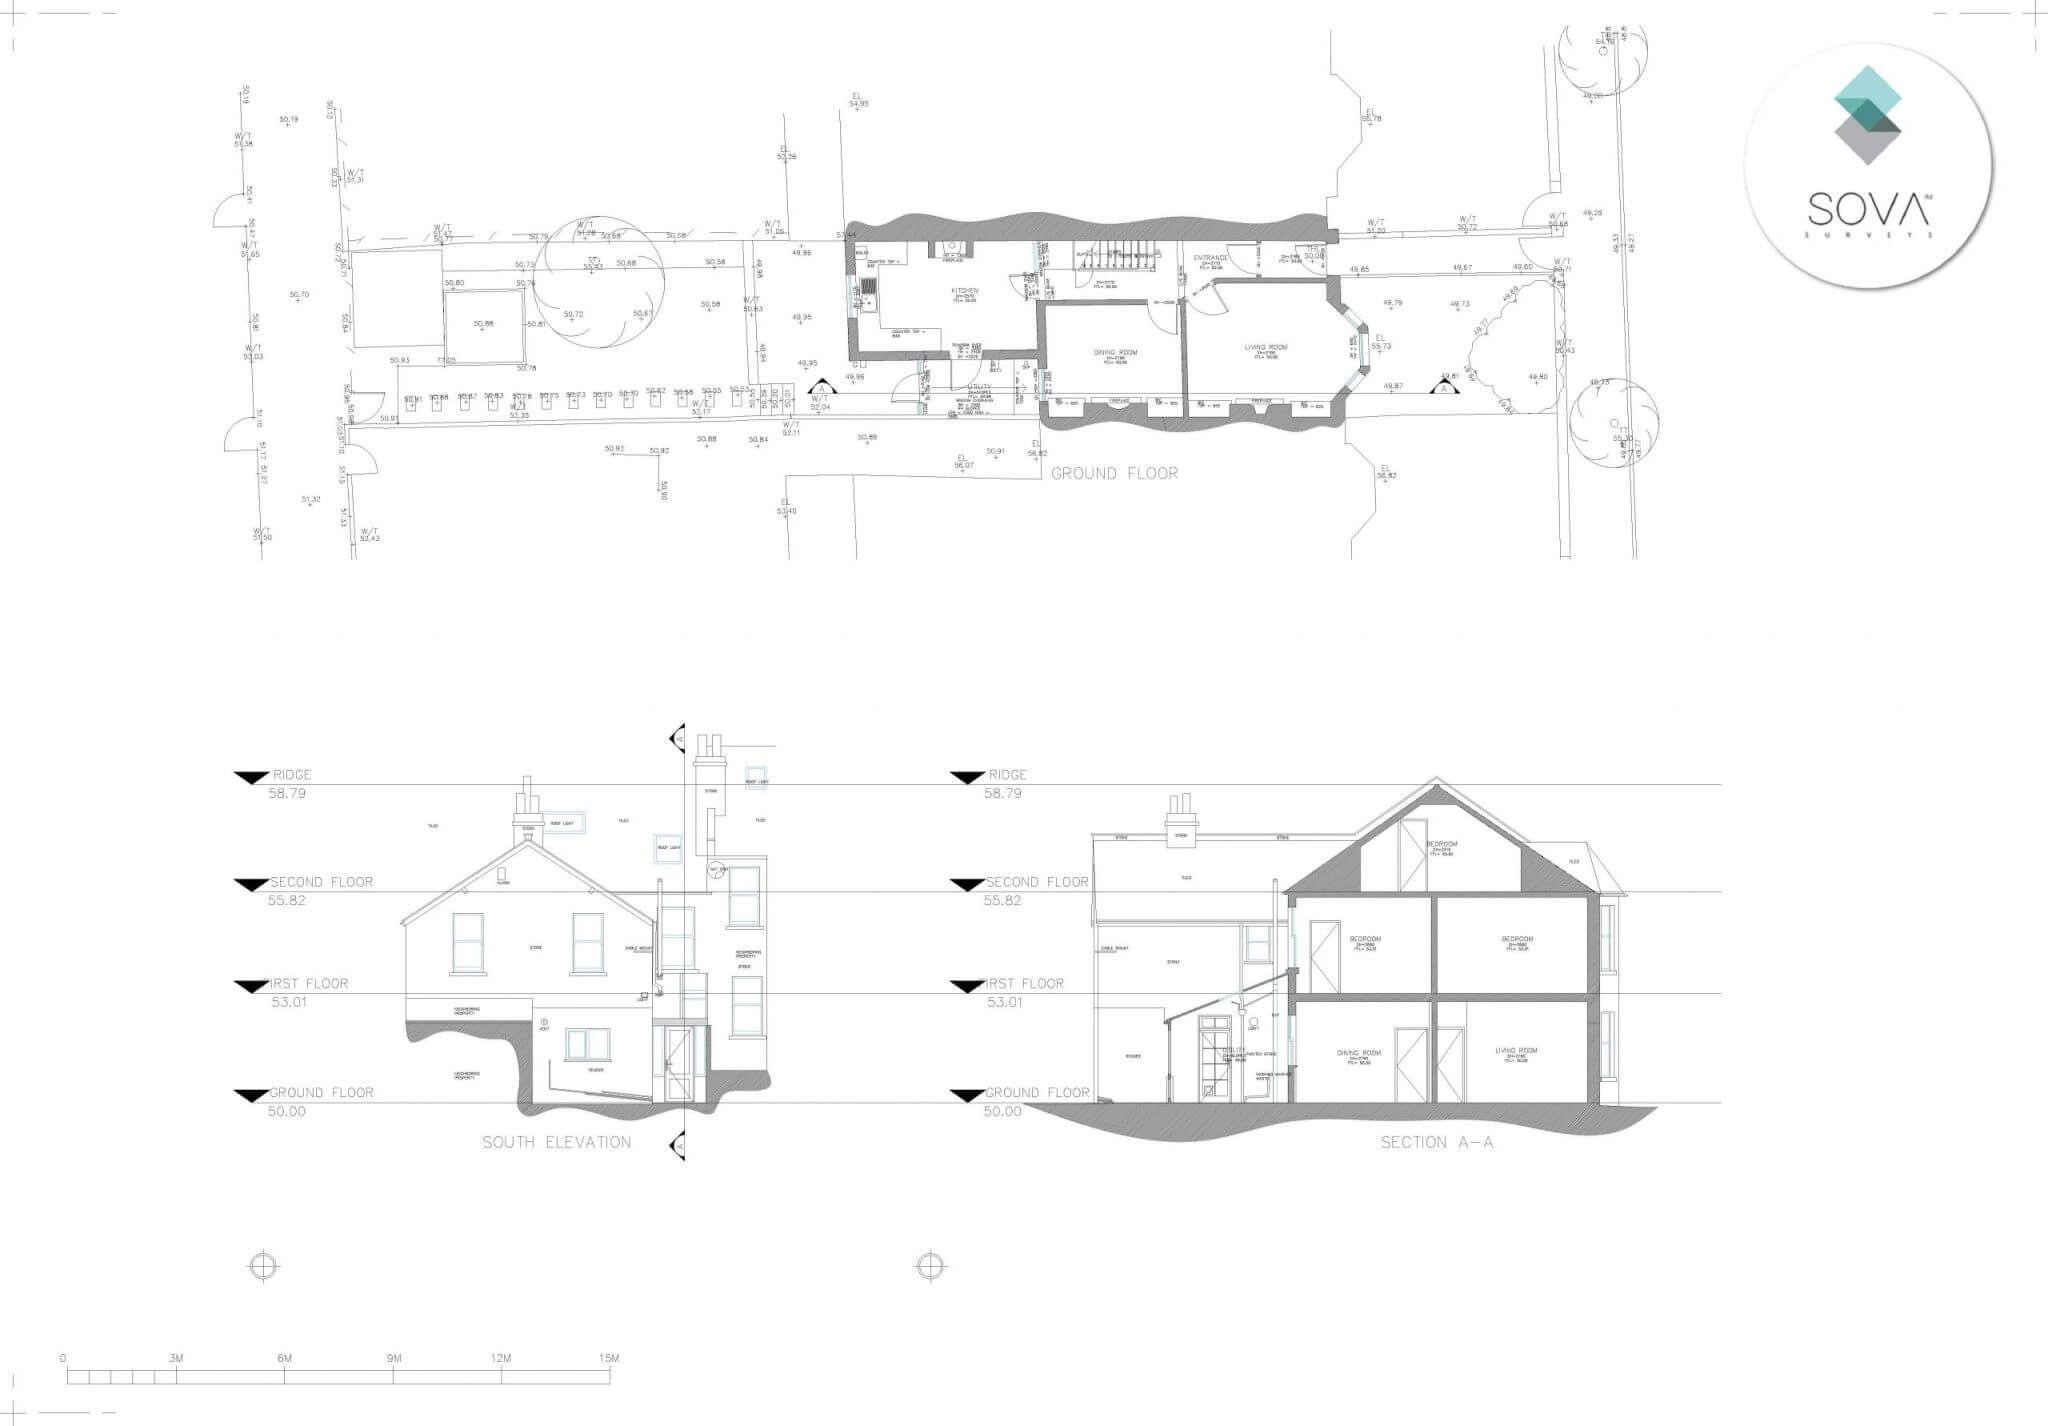 An example of a floor layout from a measured building survey